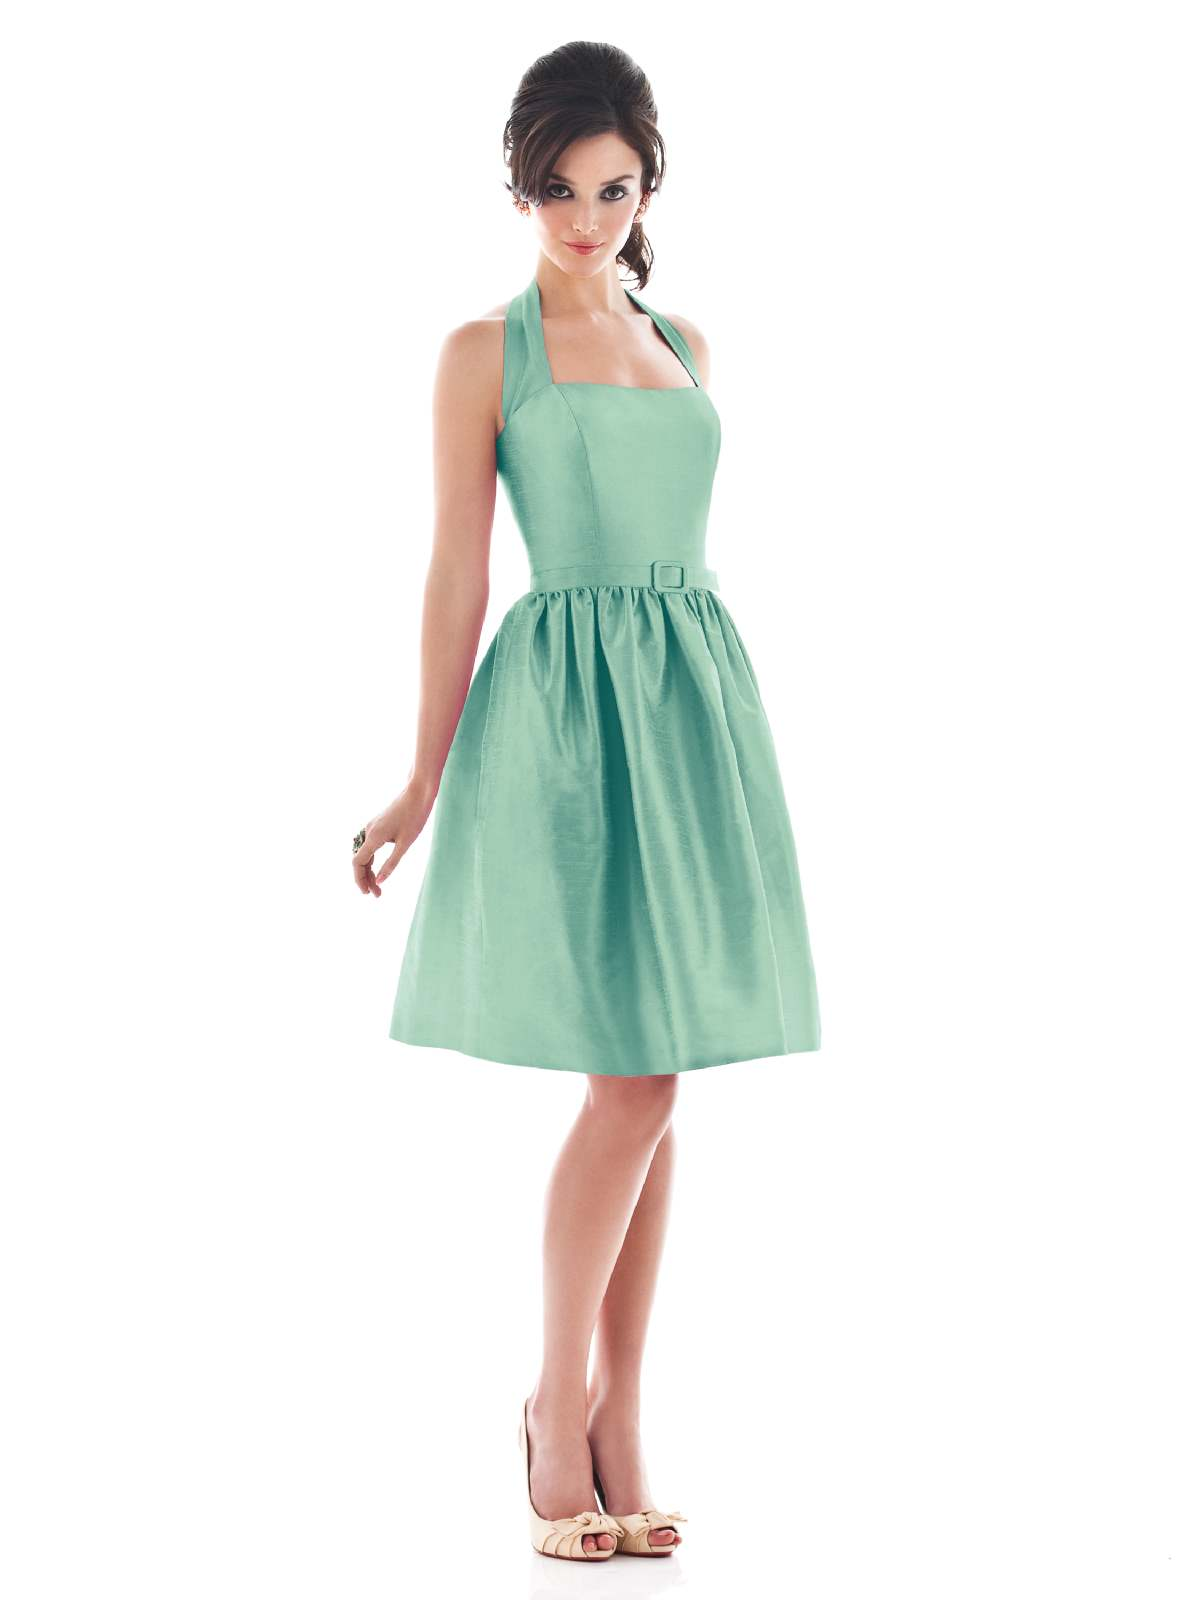 A Line Halter Low Back Knee Length Aqua Prom Dresses With Belt And Draped Skirt